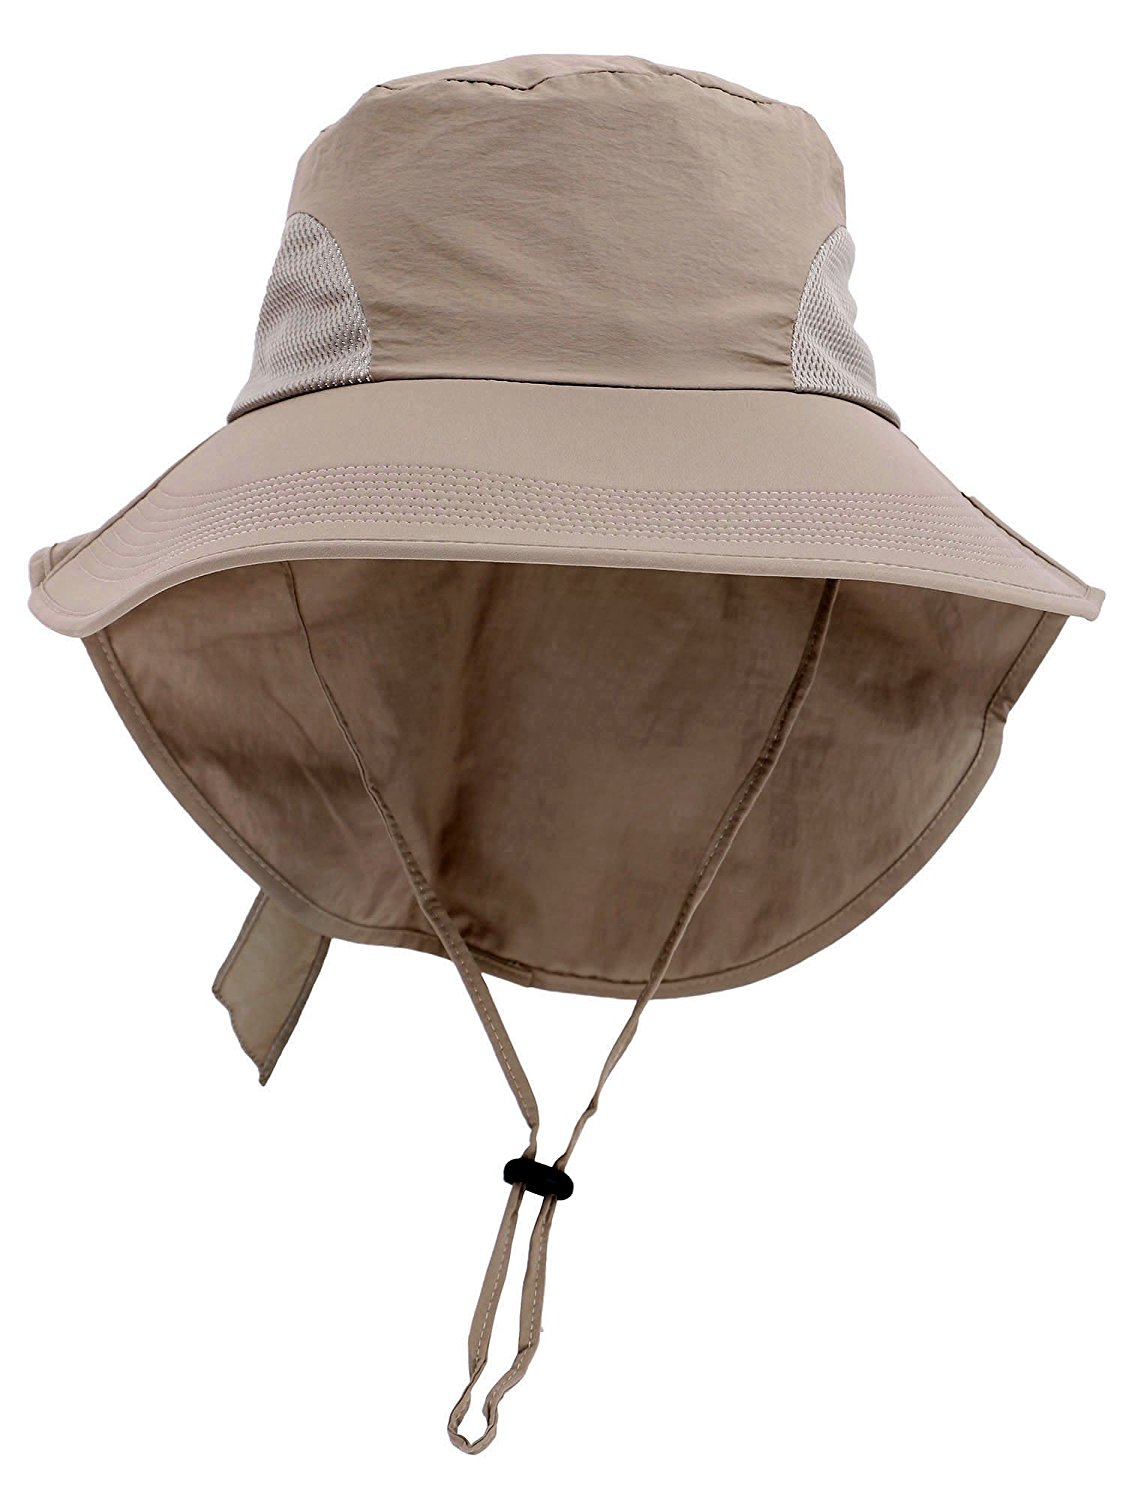 e6d1435a7be Get Quotations · Denovit SPF 50+ UV Sun Protective Foldable Travel Bucket  Hat w Neck Flap